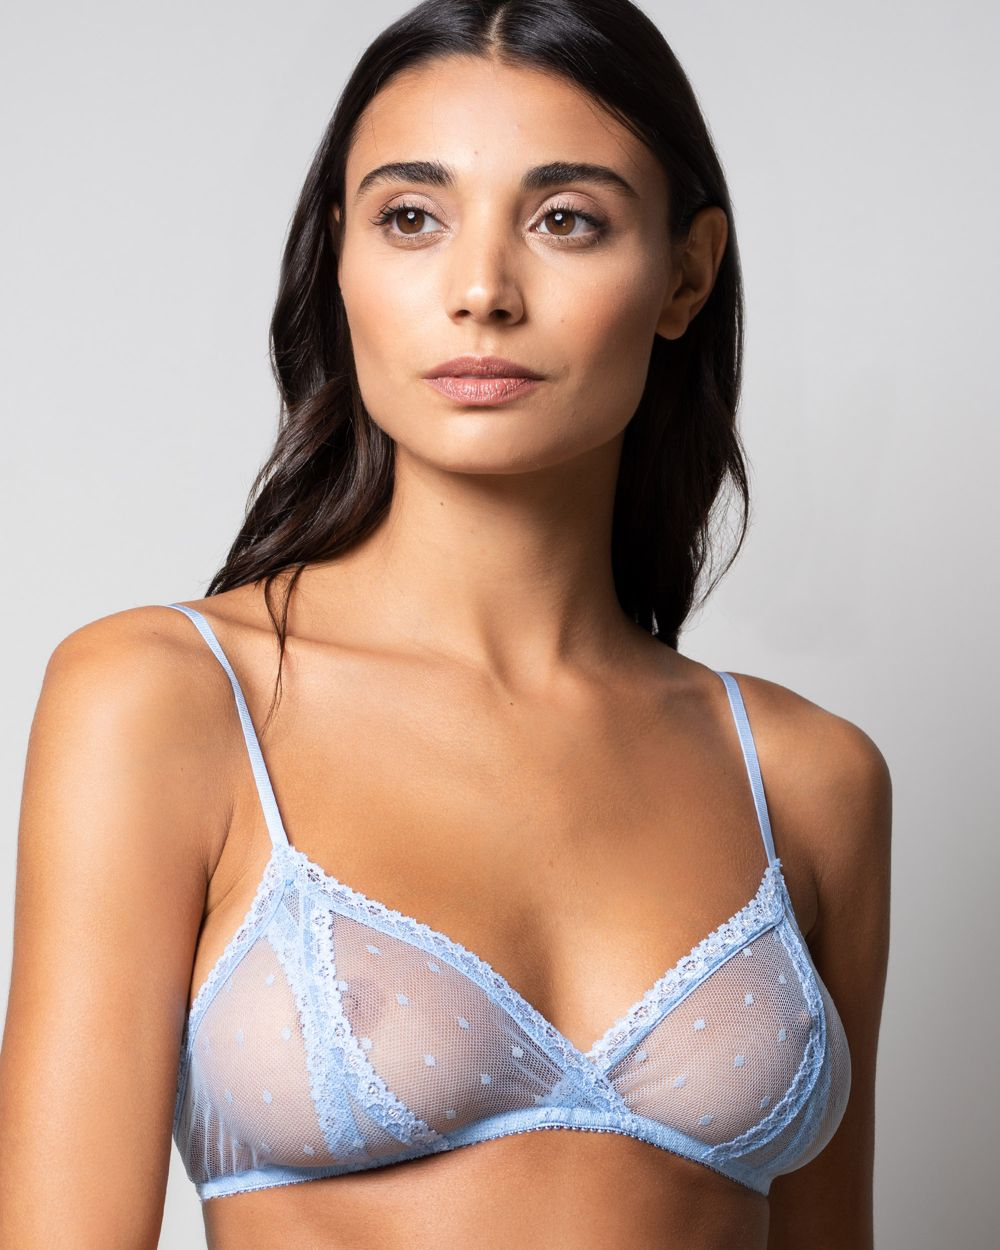 3d932f7a7c8258 Coucou Bralette by Only Hearts Journelle Livy Samantha Chang Only Hearts  Dita Von Teese